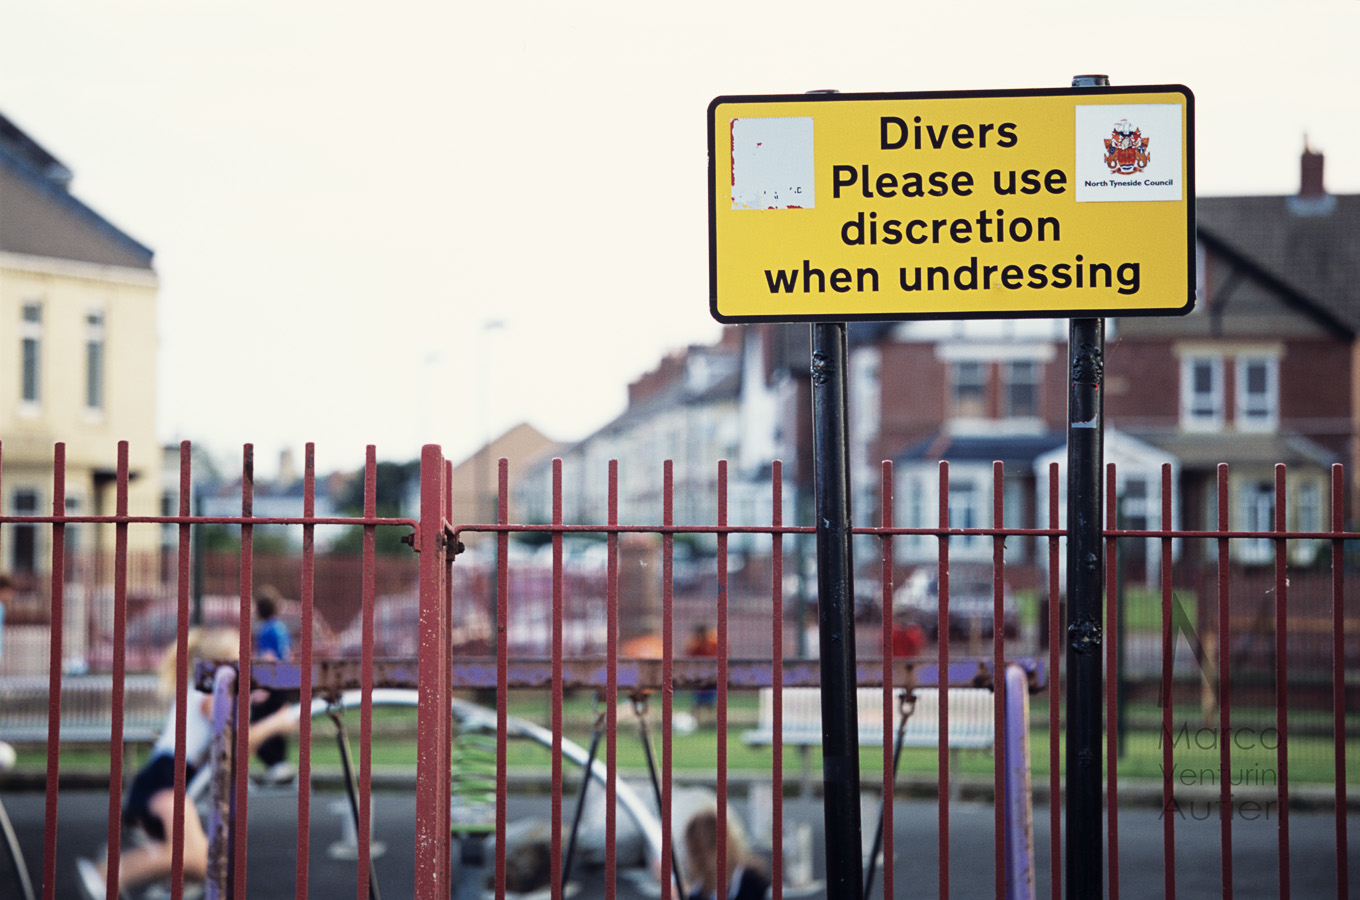 Divers - Please use discretion when undressing! Tynemouth, England - September, 2012: this children's park with swings and other games is situated just on the seafront. A sign from the local council (North Tyneside) invites the divers arriving onshore to mind the public when changing. Canon EOS 1n, EF 70-200 f/4L IS, Provia 100F